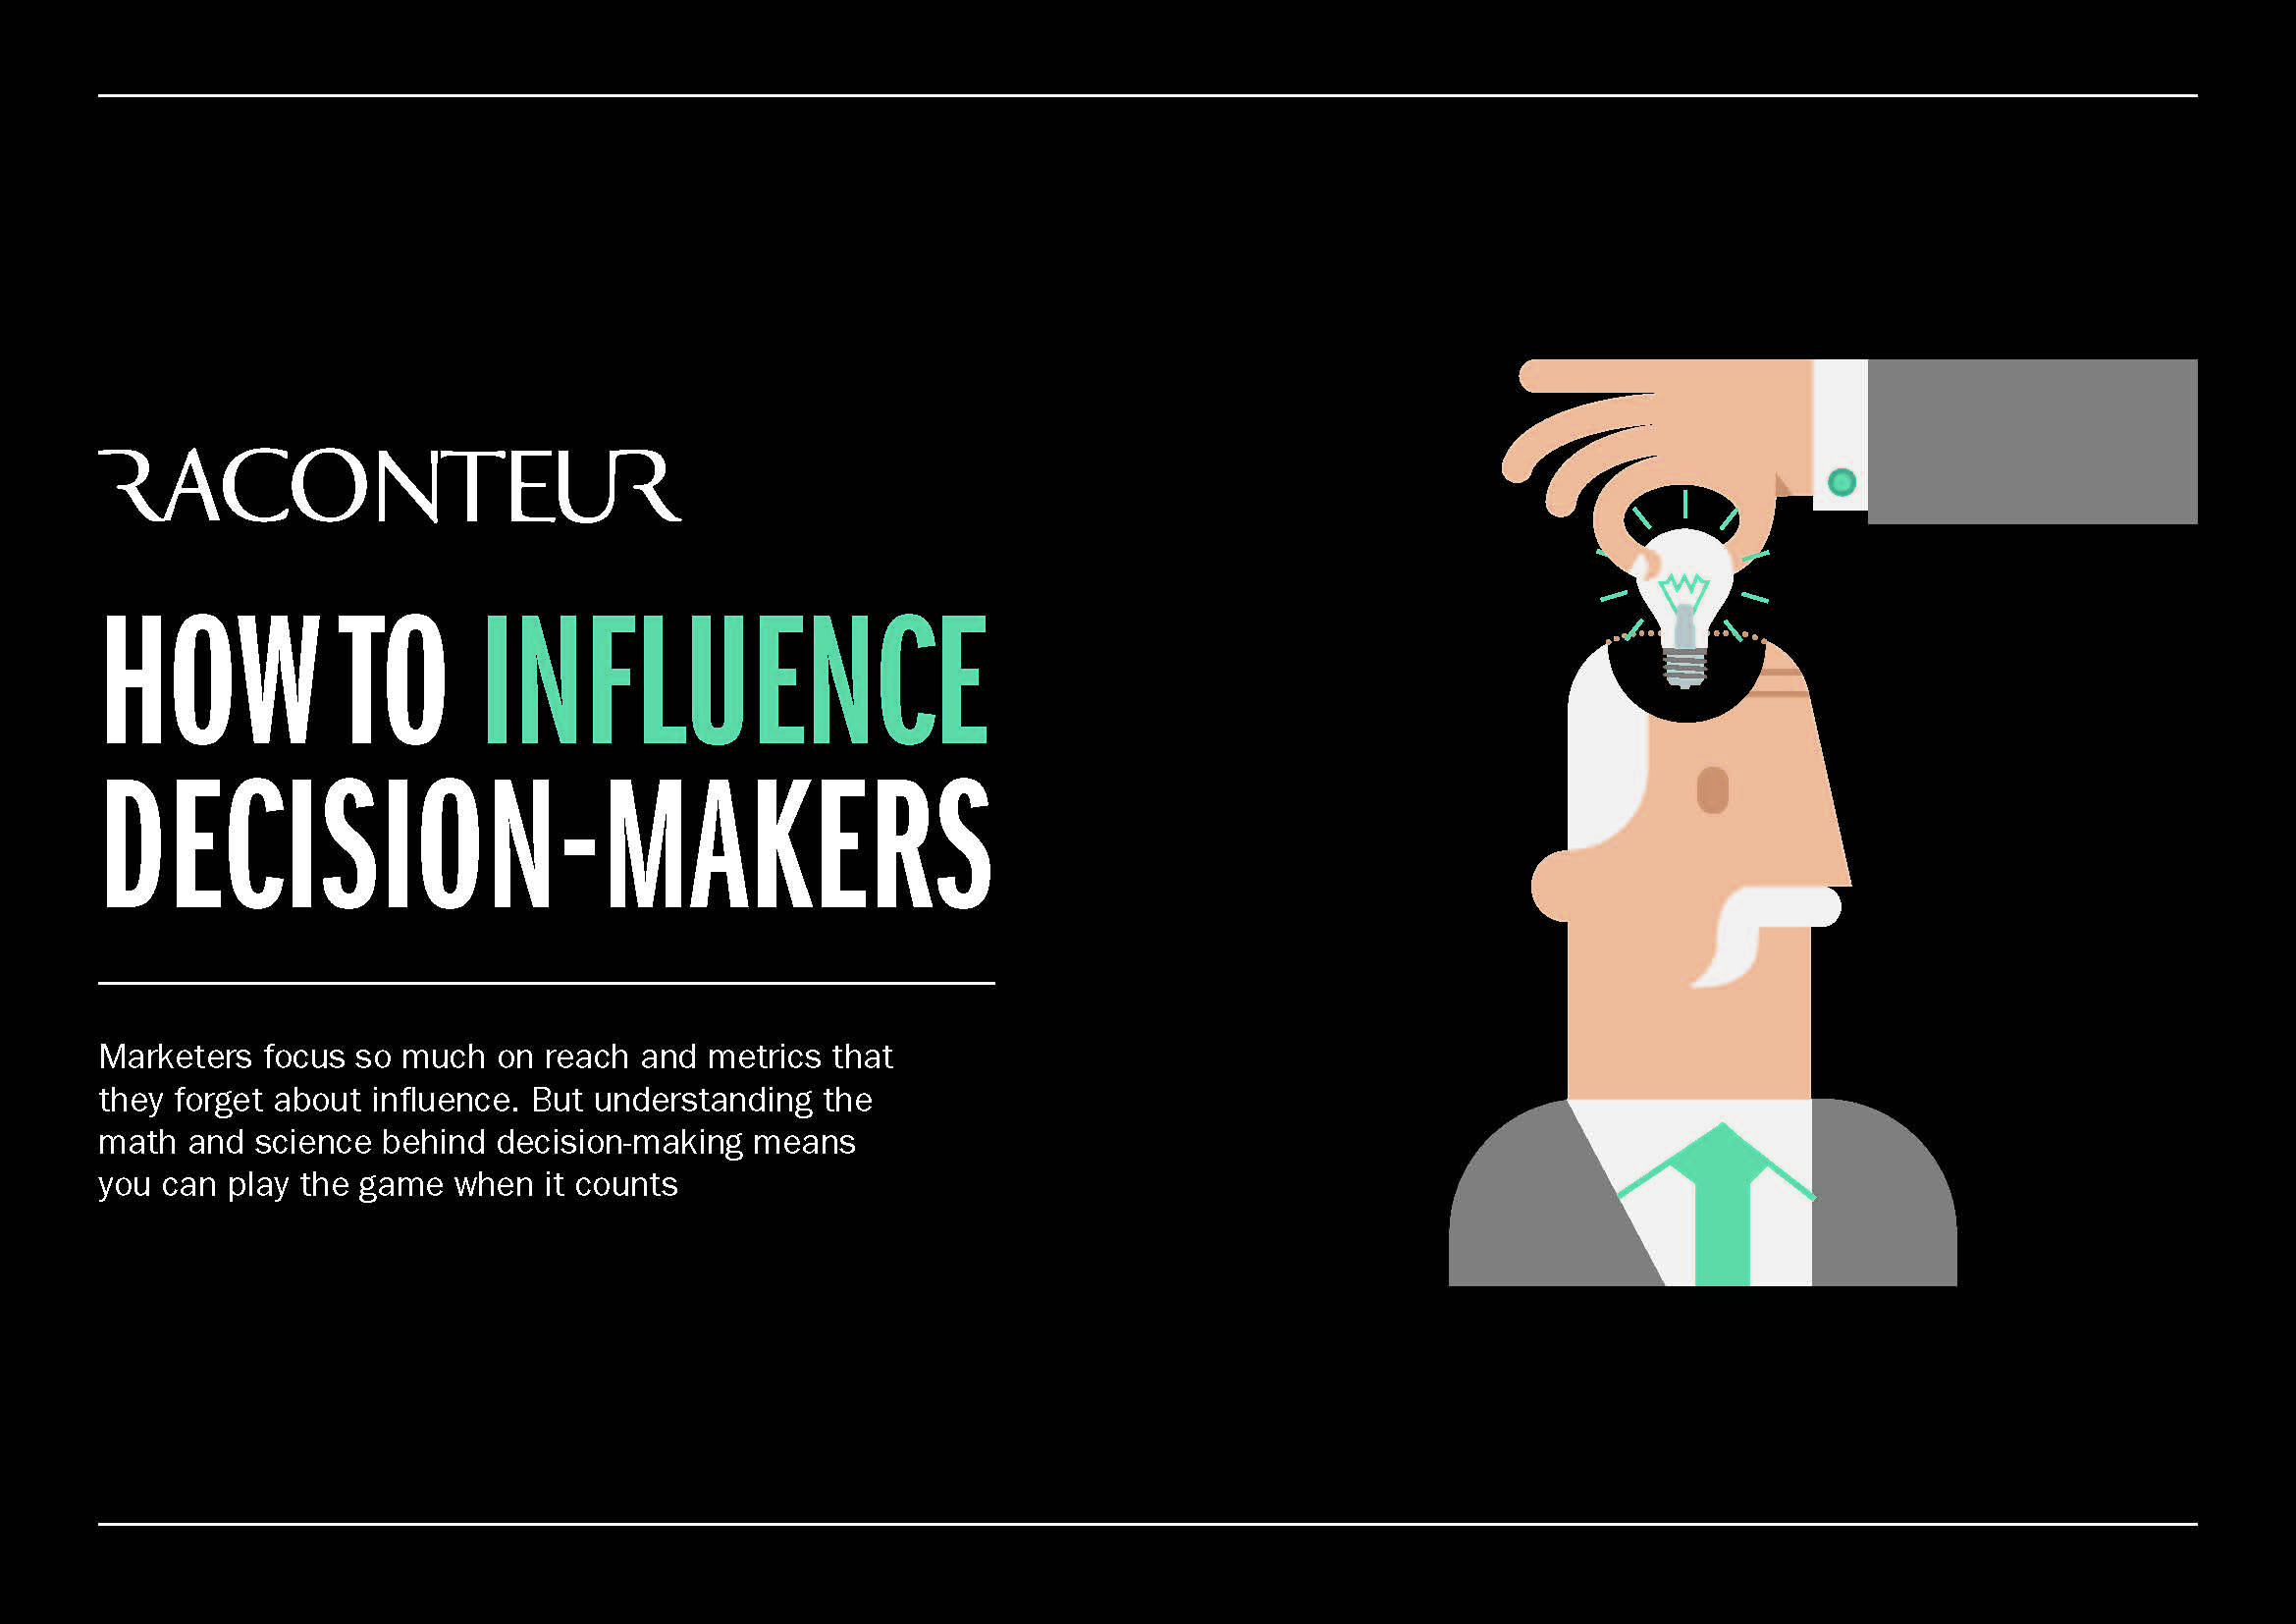 How to influence decision makers infographic